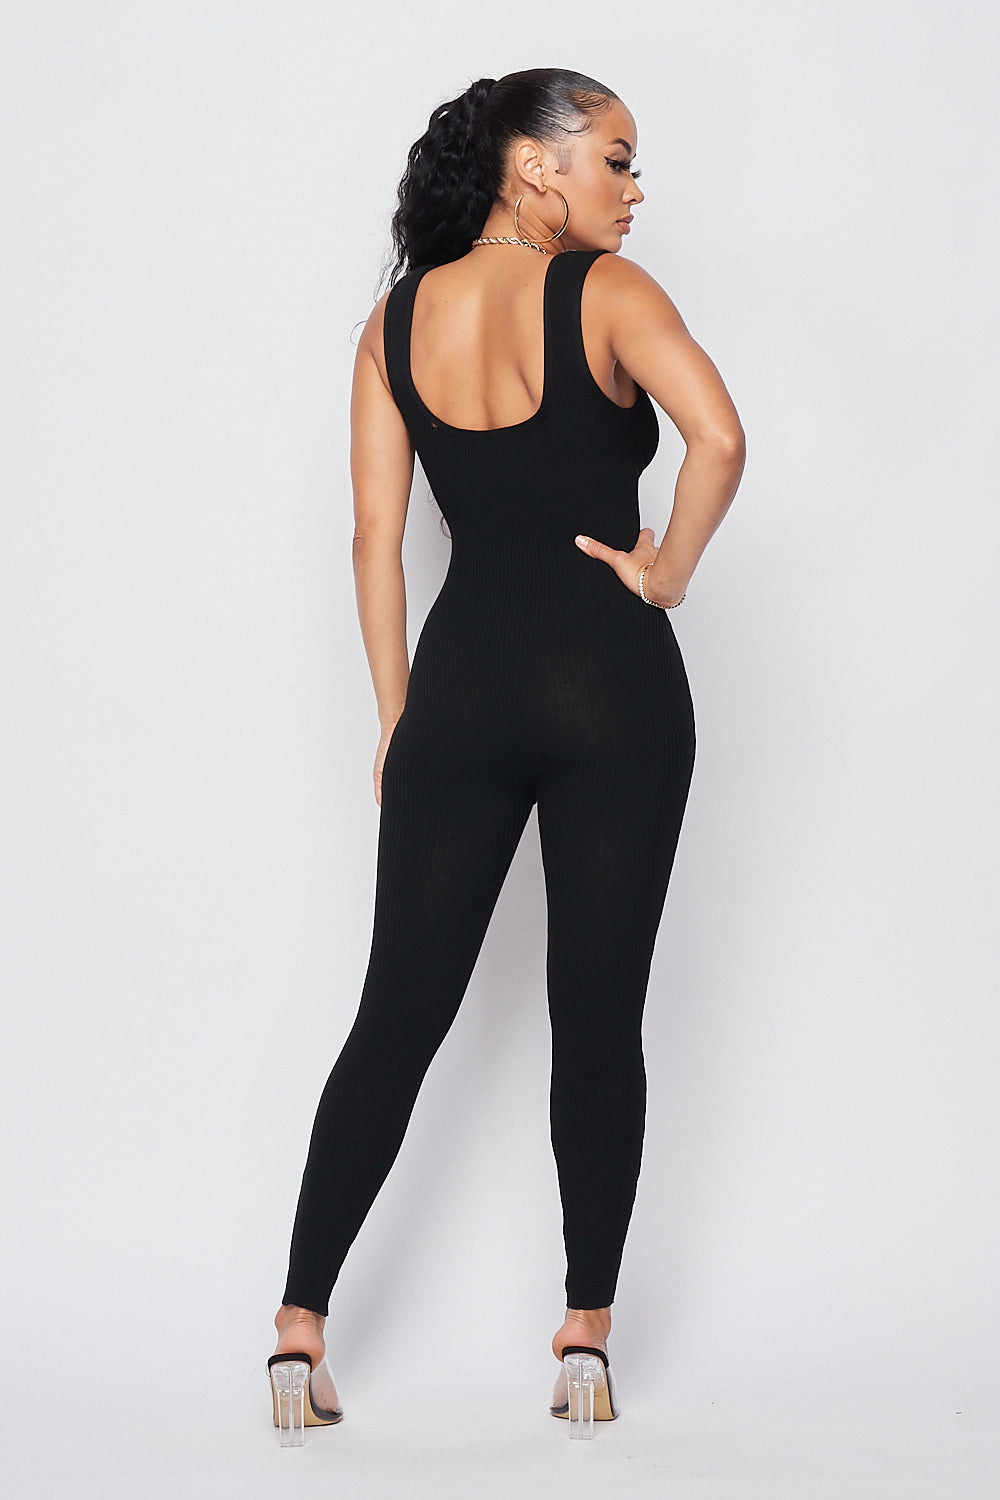 Hold Me Knit Jumpsuit-BLACK - Fashion House USA